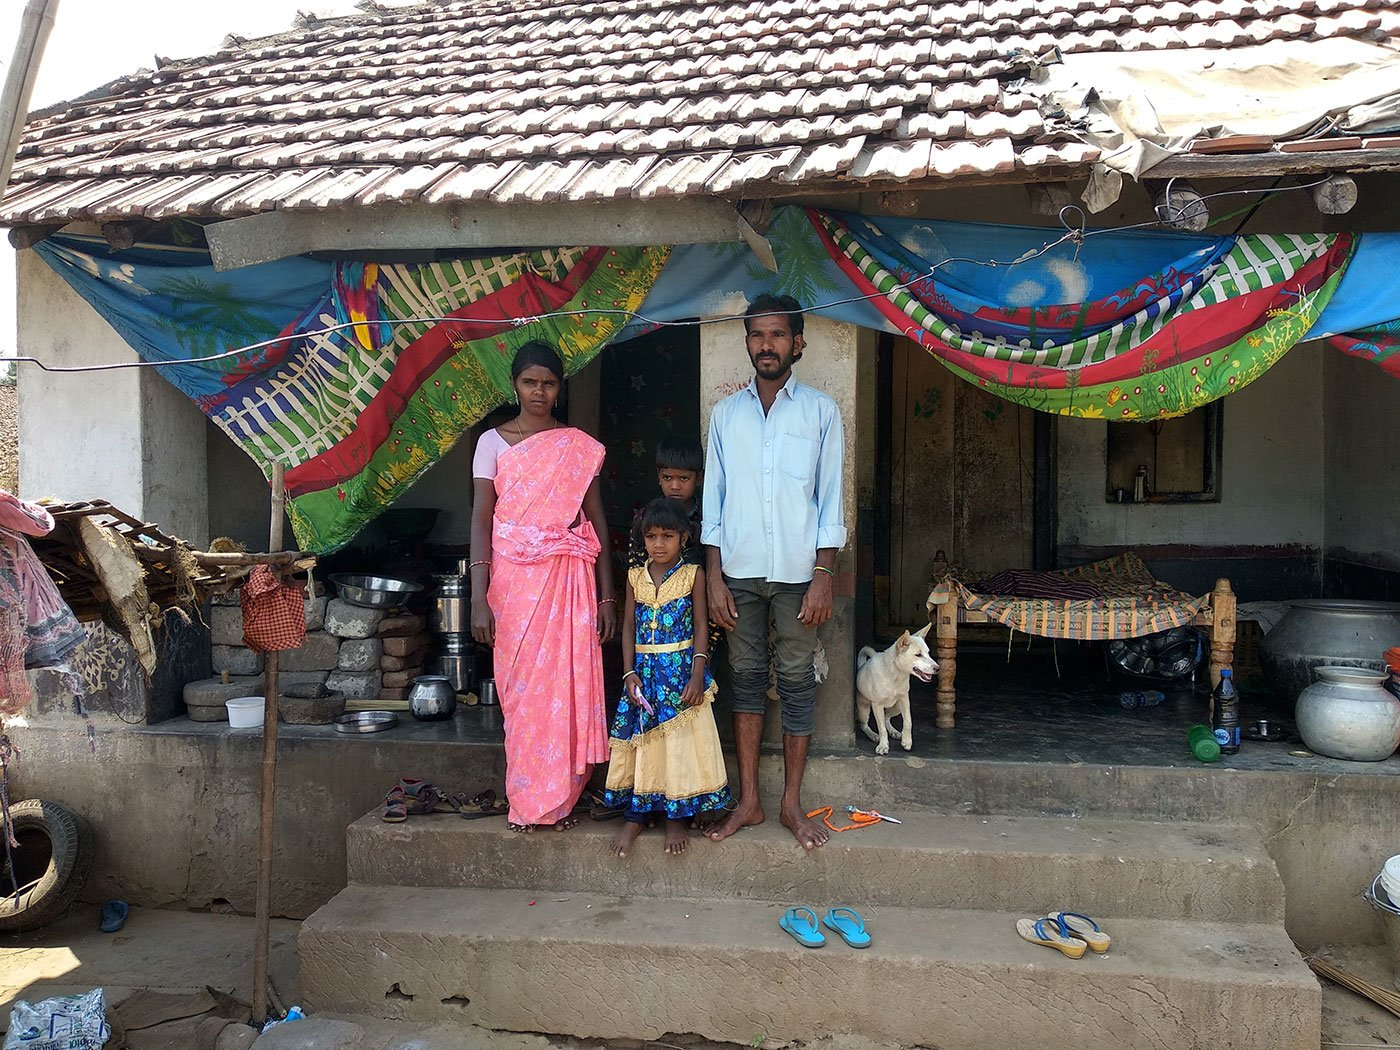 Sridevi, Smiley, Prashanth and Suryachandram, in front of their house in Pydipaka